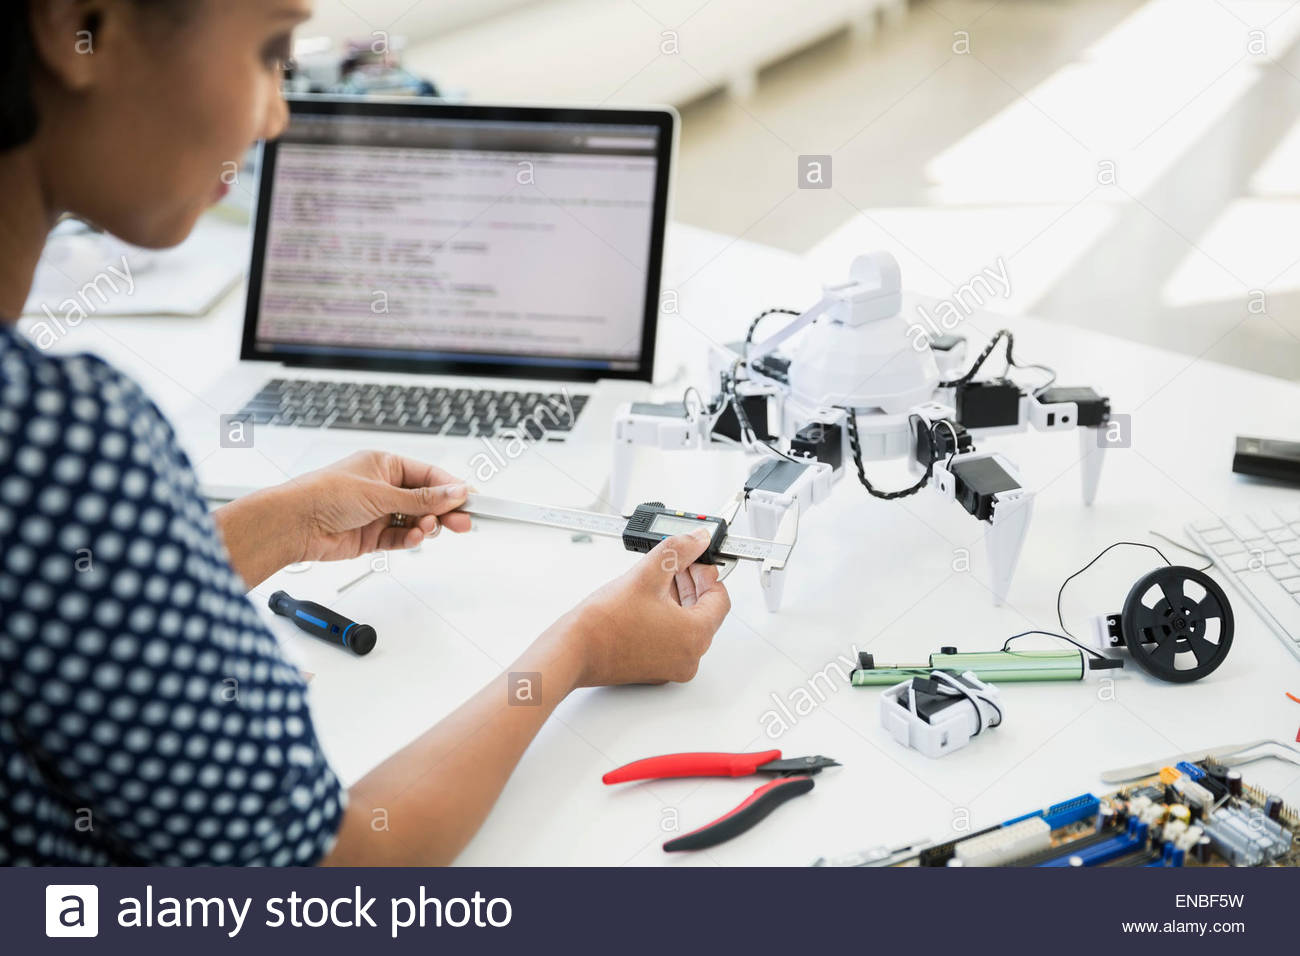 Engineer measuring robot with calipers - Stock Image